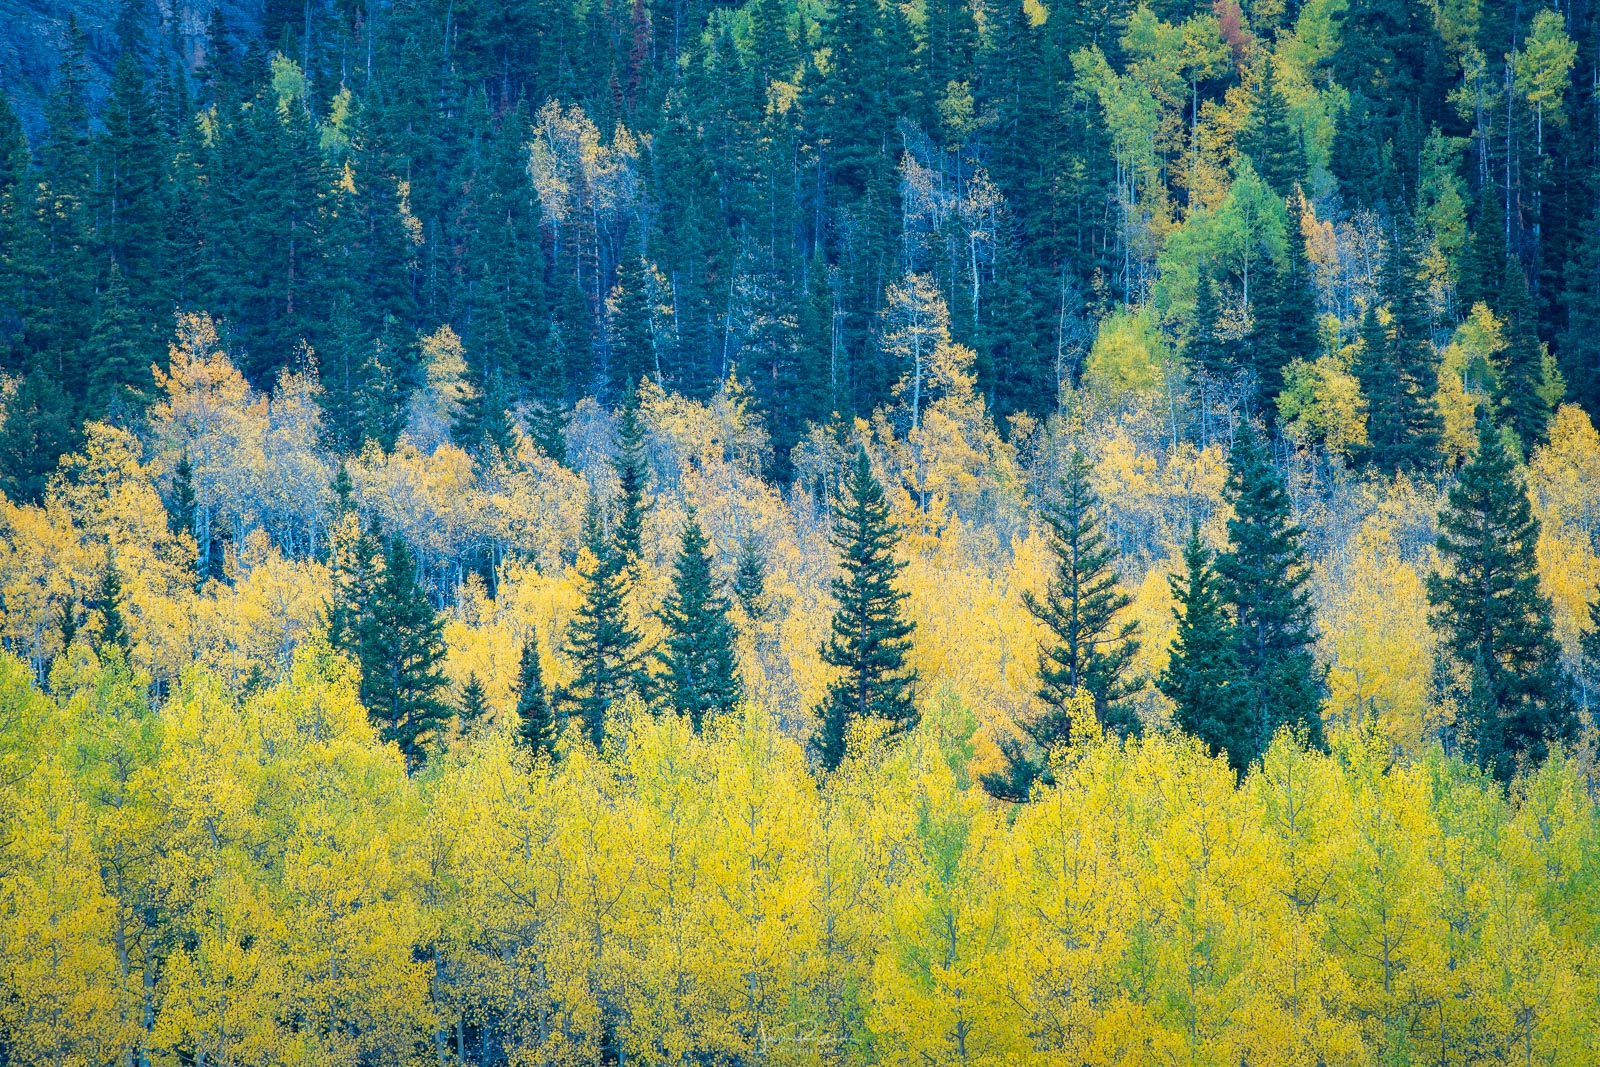 Autumn color near Red Mountain Pass.